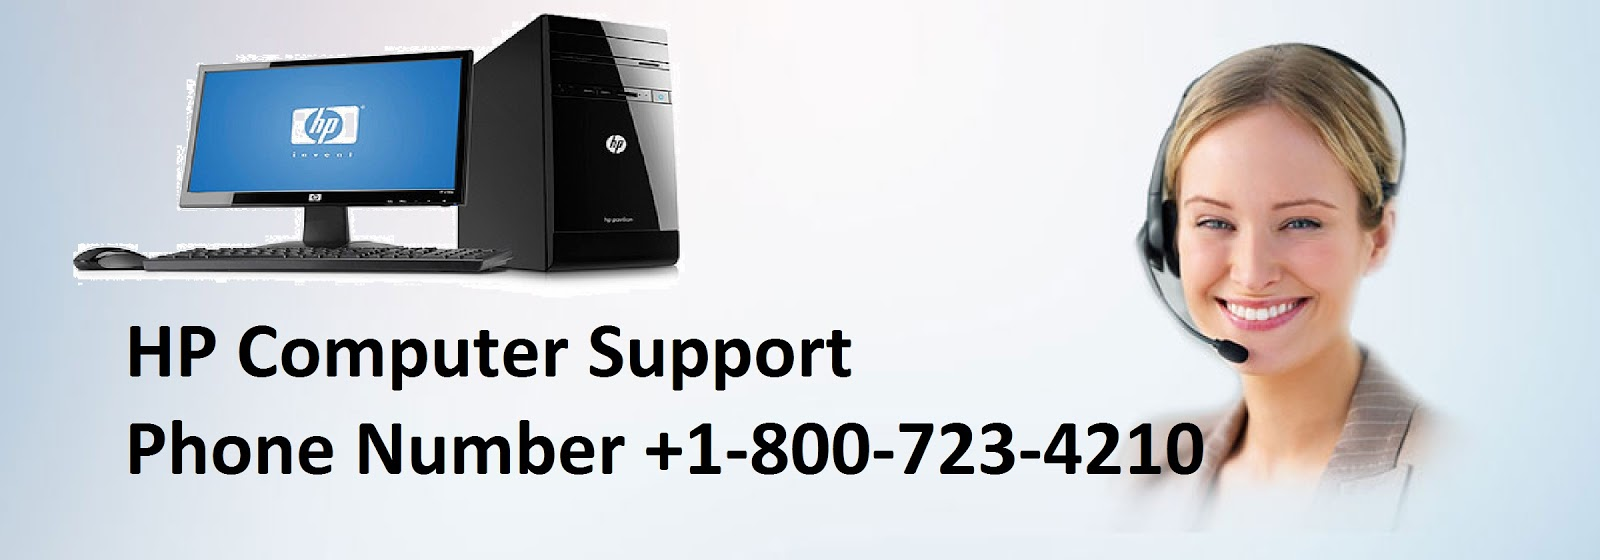 hp technical support number +1-800-723-4210,hp support,hp tech support  +1-800-723-4210,hp support number,hp technical support,hp customer service  number,hp ...